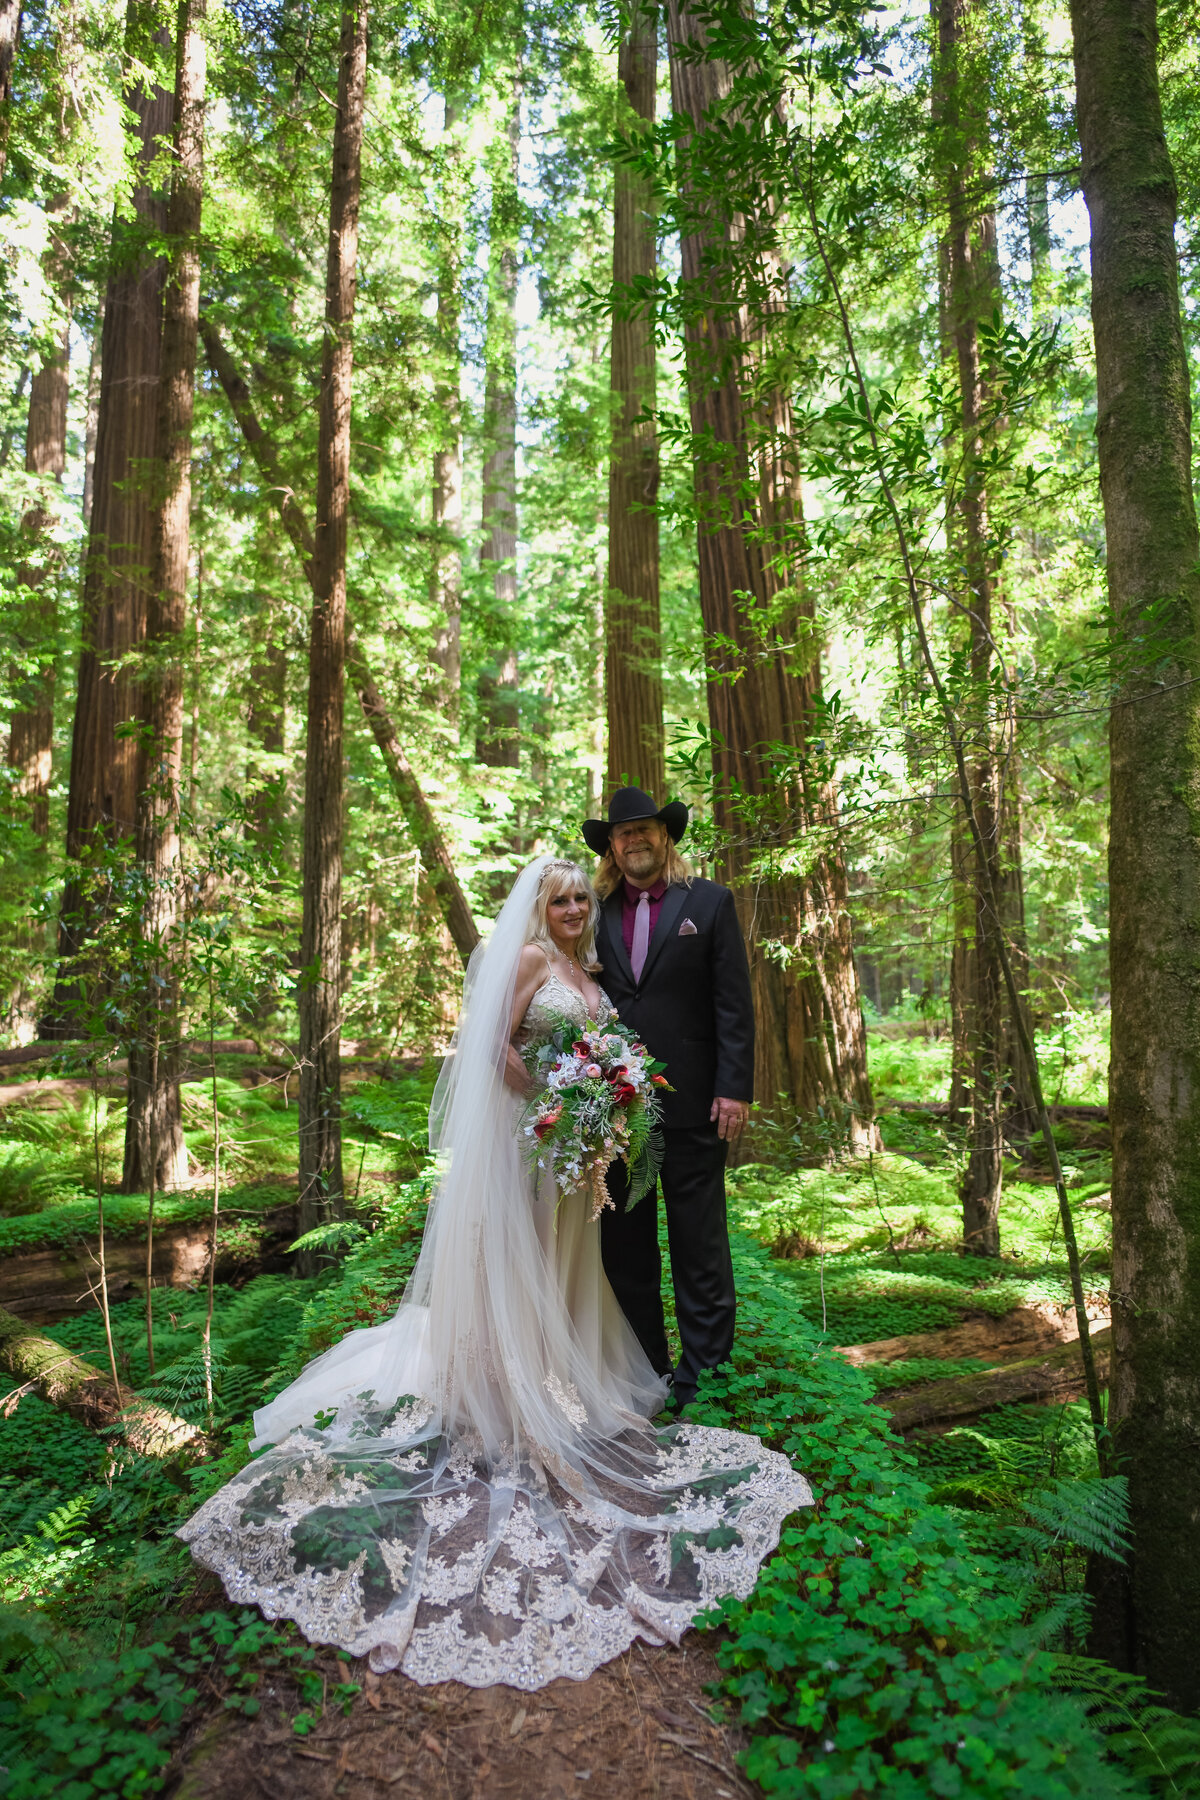 Redway-California-elopement-photographer-Parky's-Pics-Photography-redwoods-elopement-Avenue-of-the-Giants-Pepperwood-California-12.jpg